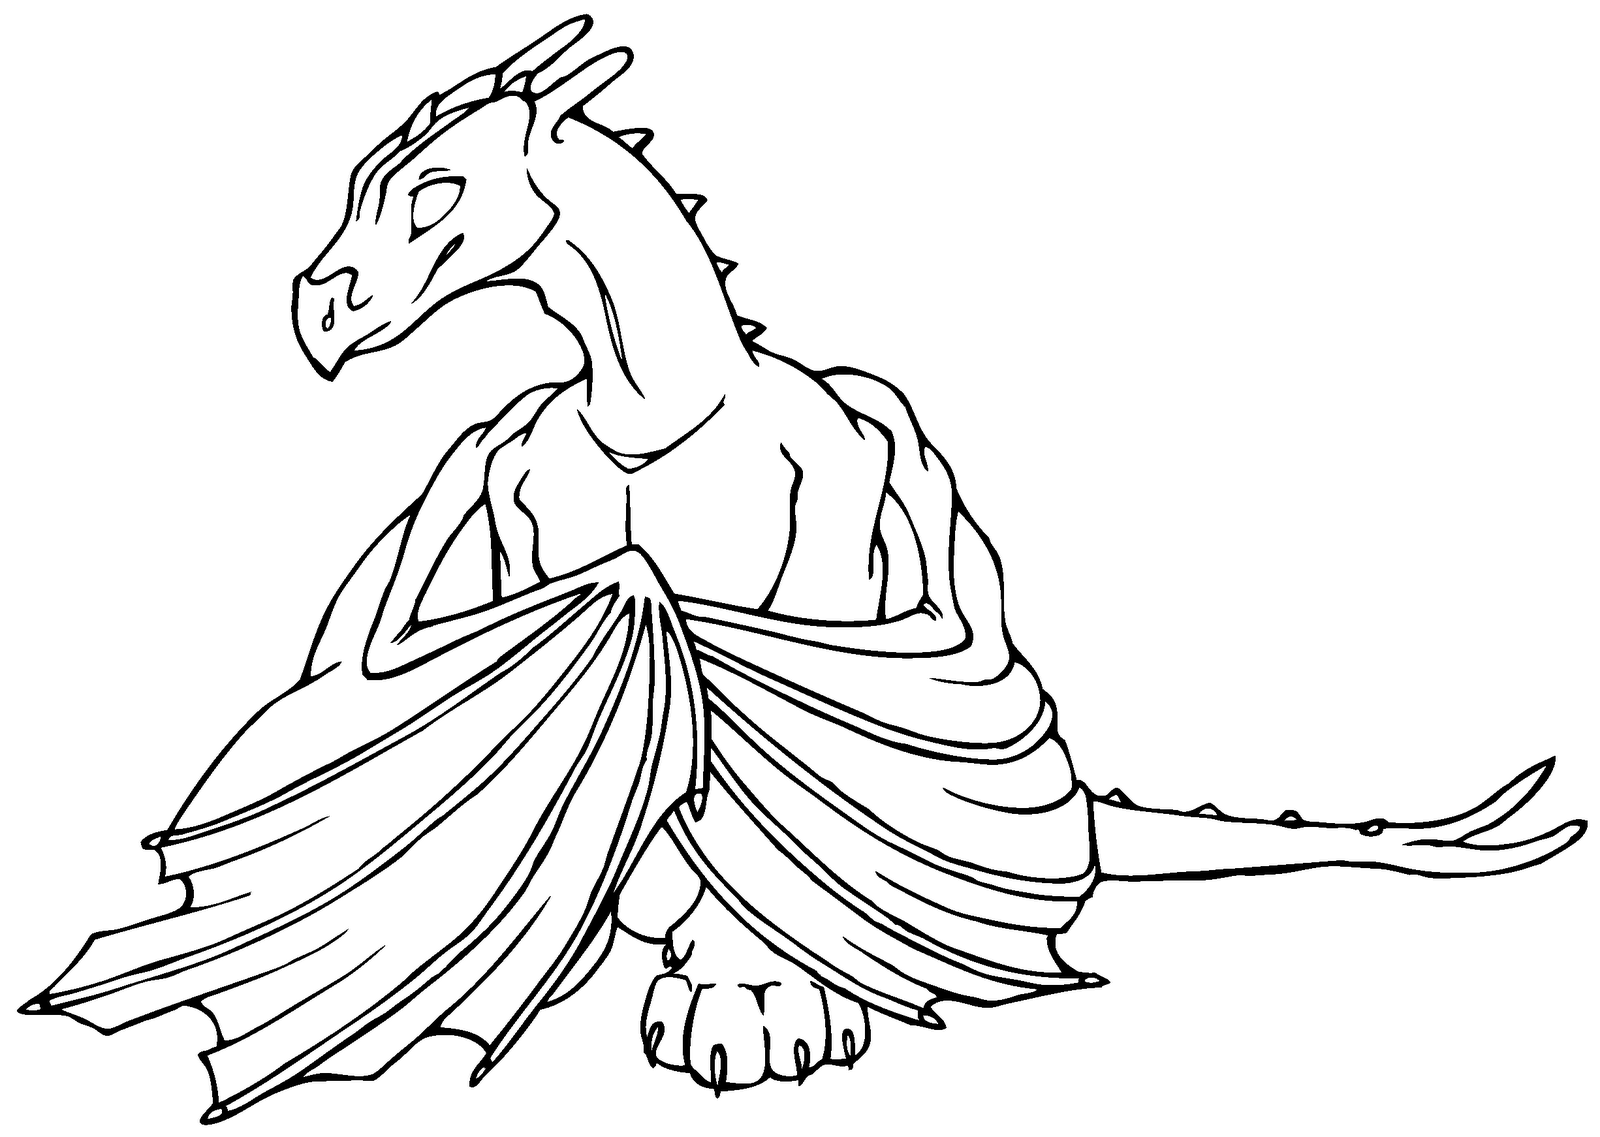 Simple Dragon Head Coloring Pages For Adults - Worksheet & Coloring ...